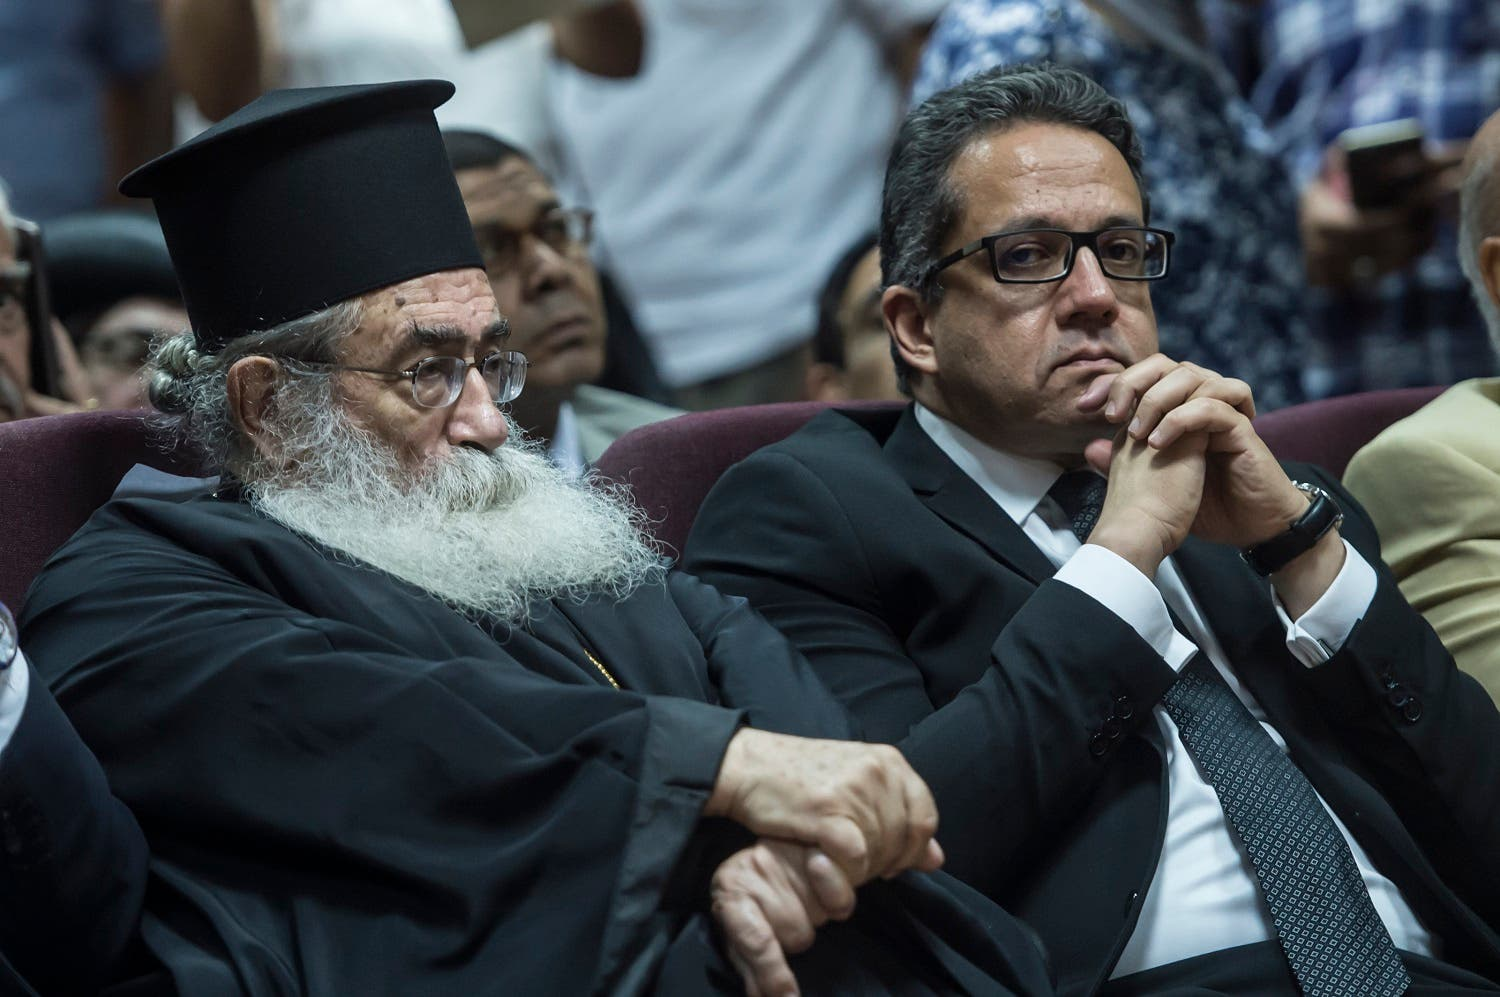 Egyptian Minister of Antiques Khaled el-Anany (R) and Archbishop Damianos of Sinai and Raithu attend a press conference at the Ministry of Antiquities in Cairo on July 4, 2017, to unveil a manuscripts discovered at Saint Catherine Monastery. (AFP)